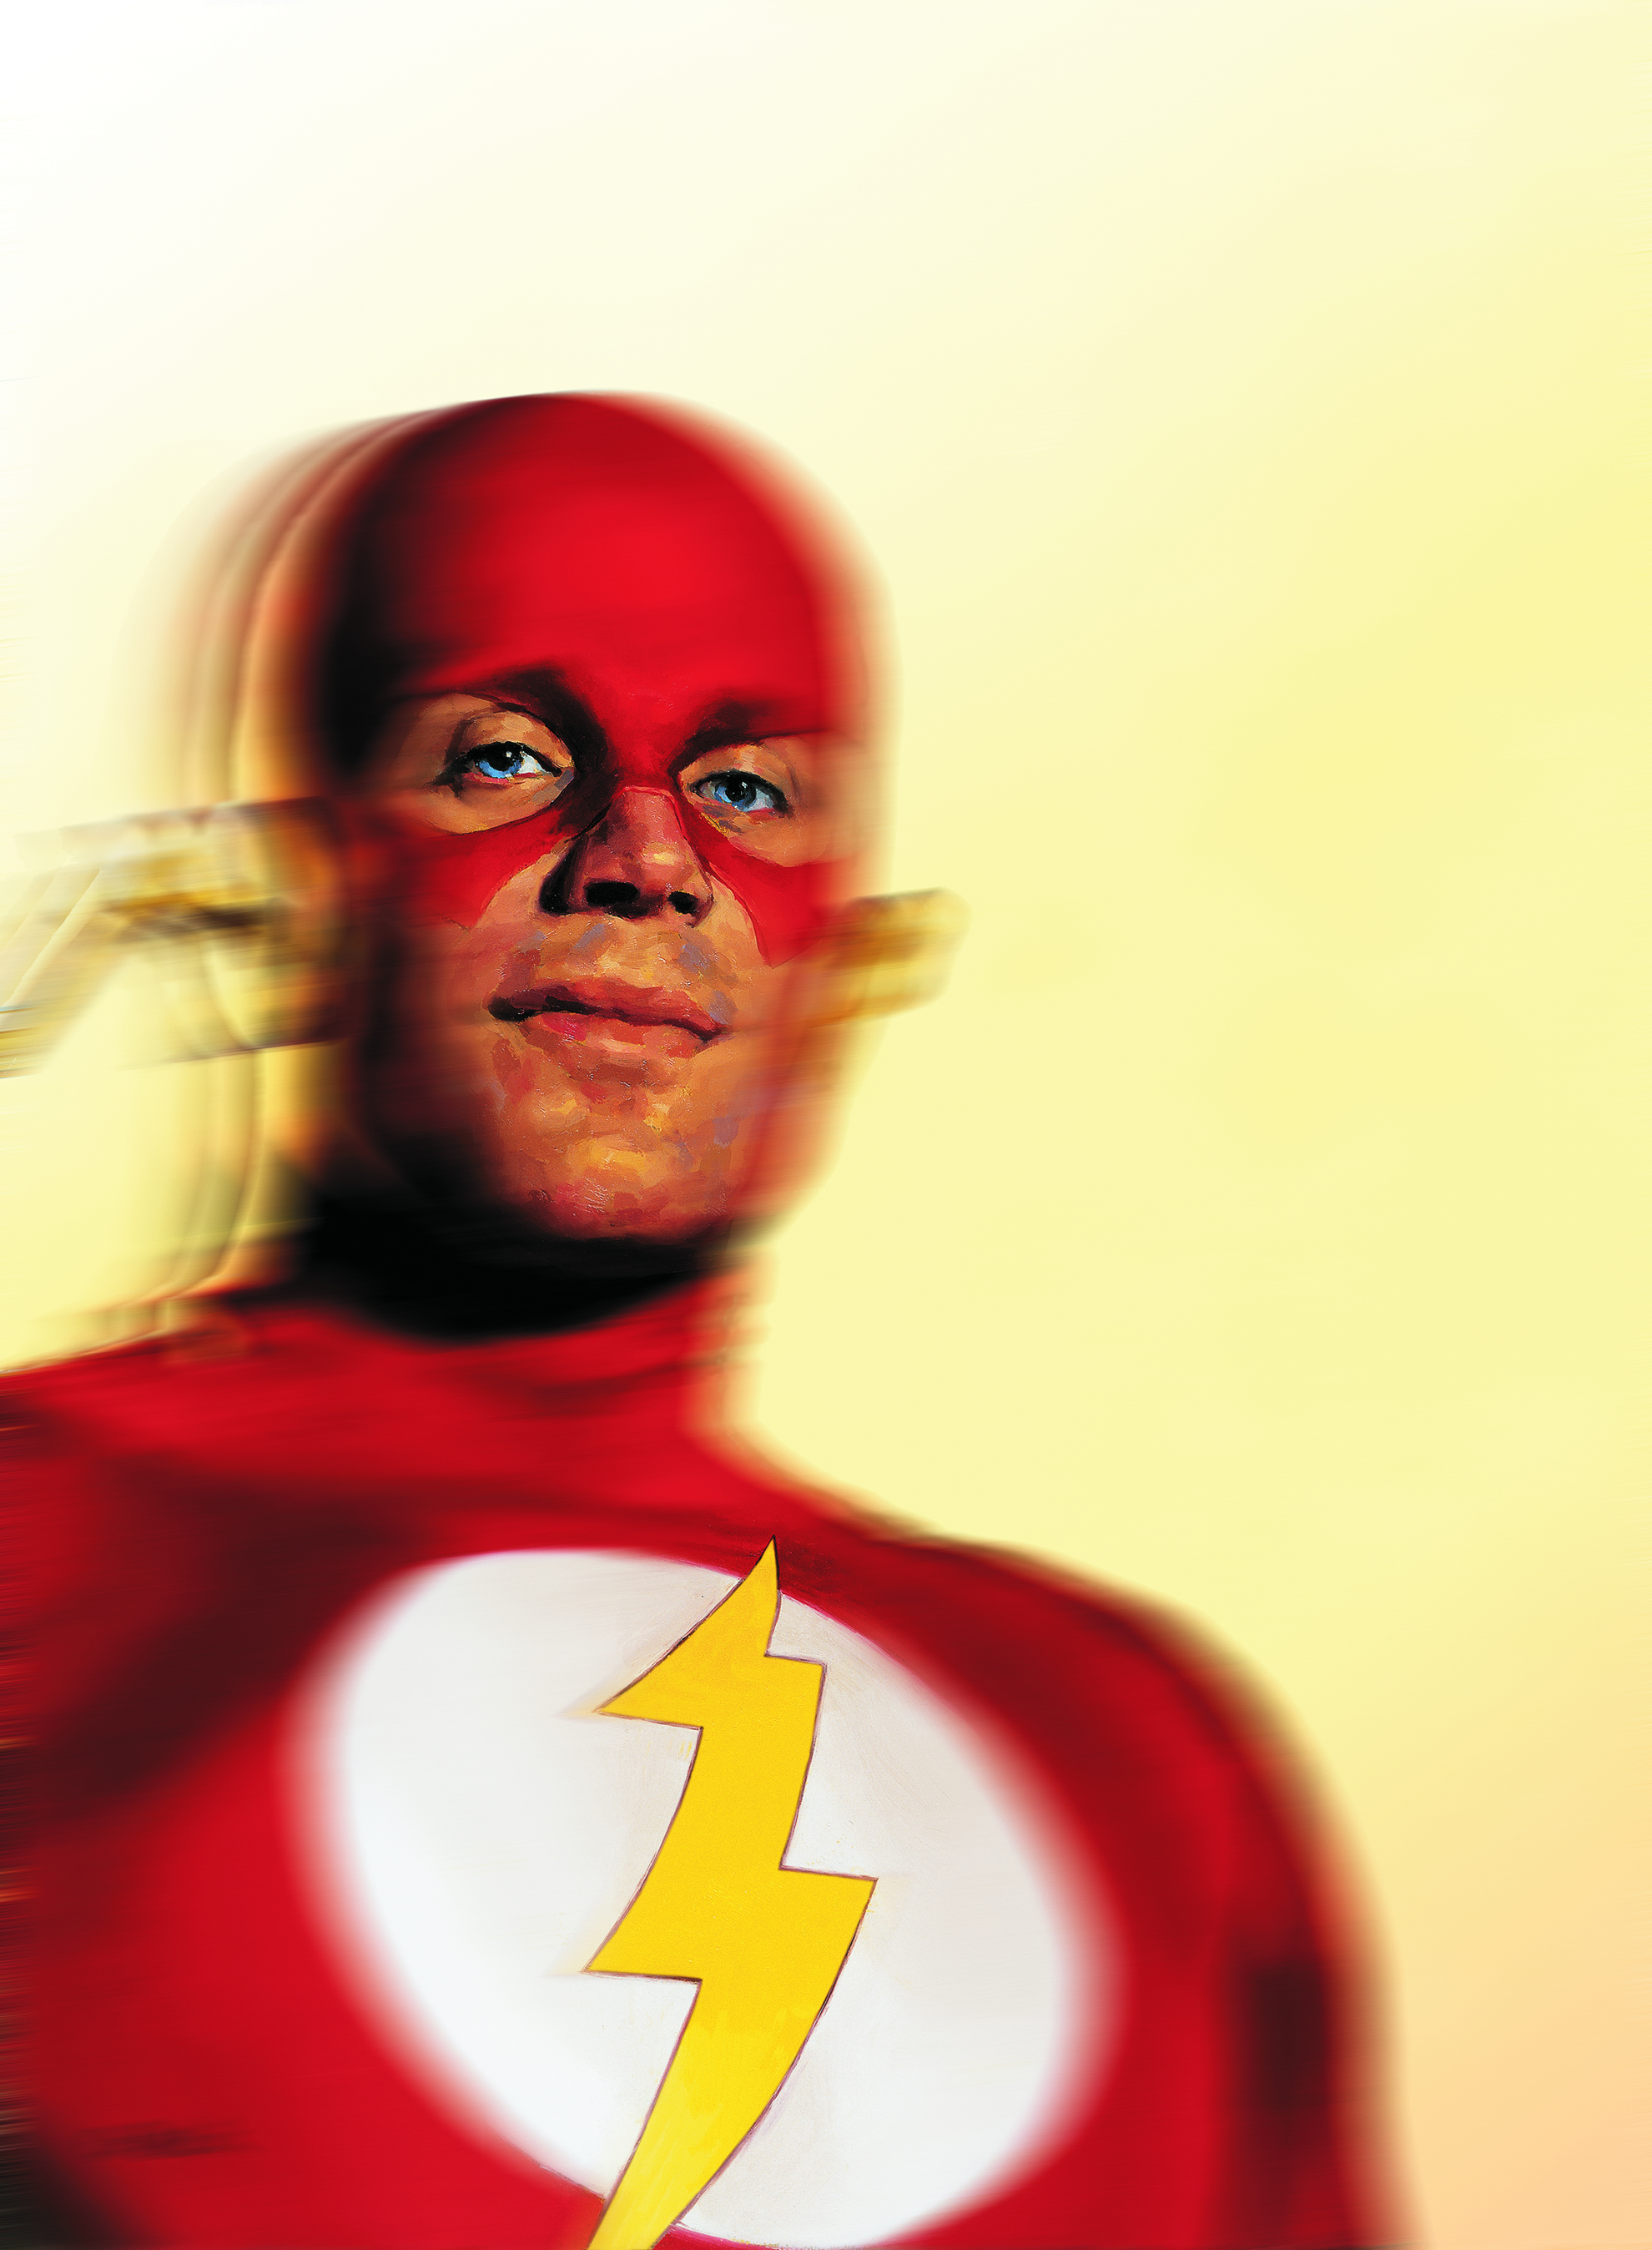 DC COMICS PRESENTS LIFE STORY OF THE FLASH #1